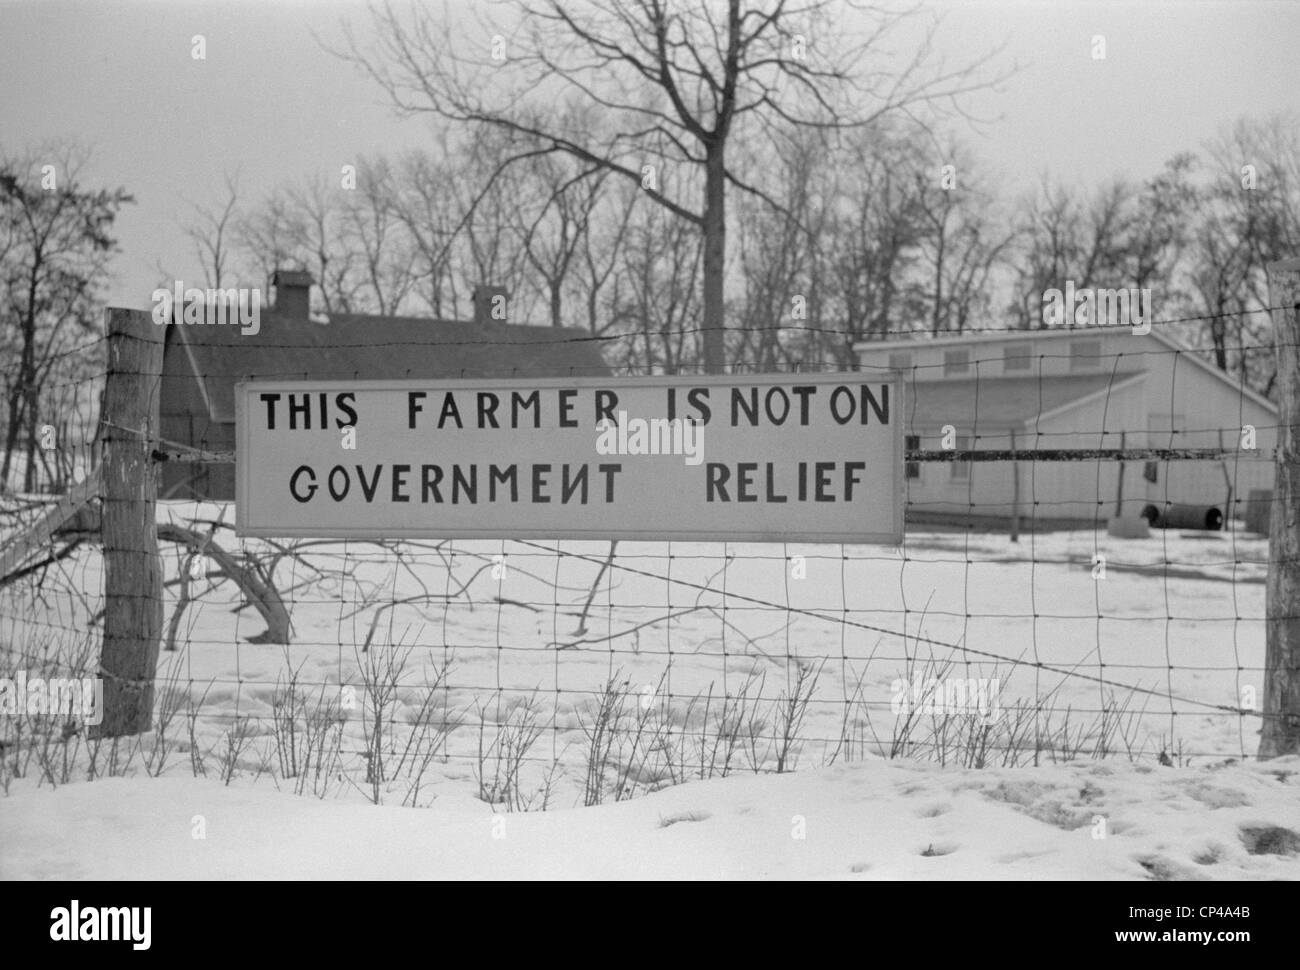 'This Farmer is not on Welfare ' reads a sign a wire fence. Iowa or Illinois Dec. 1940. - Stock Image